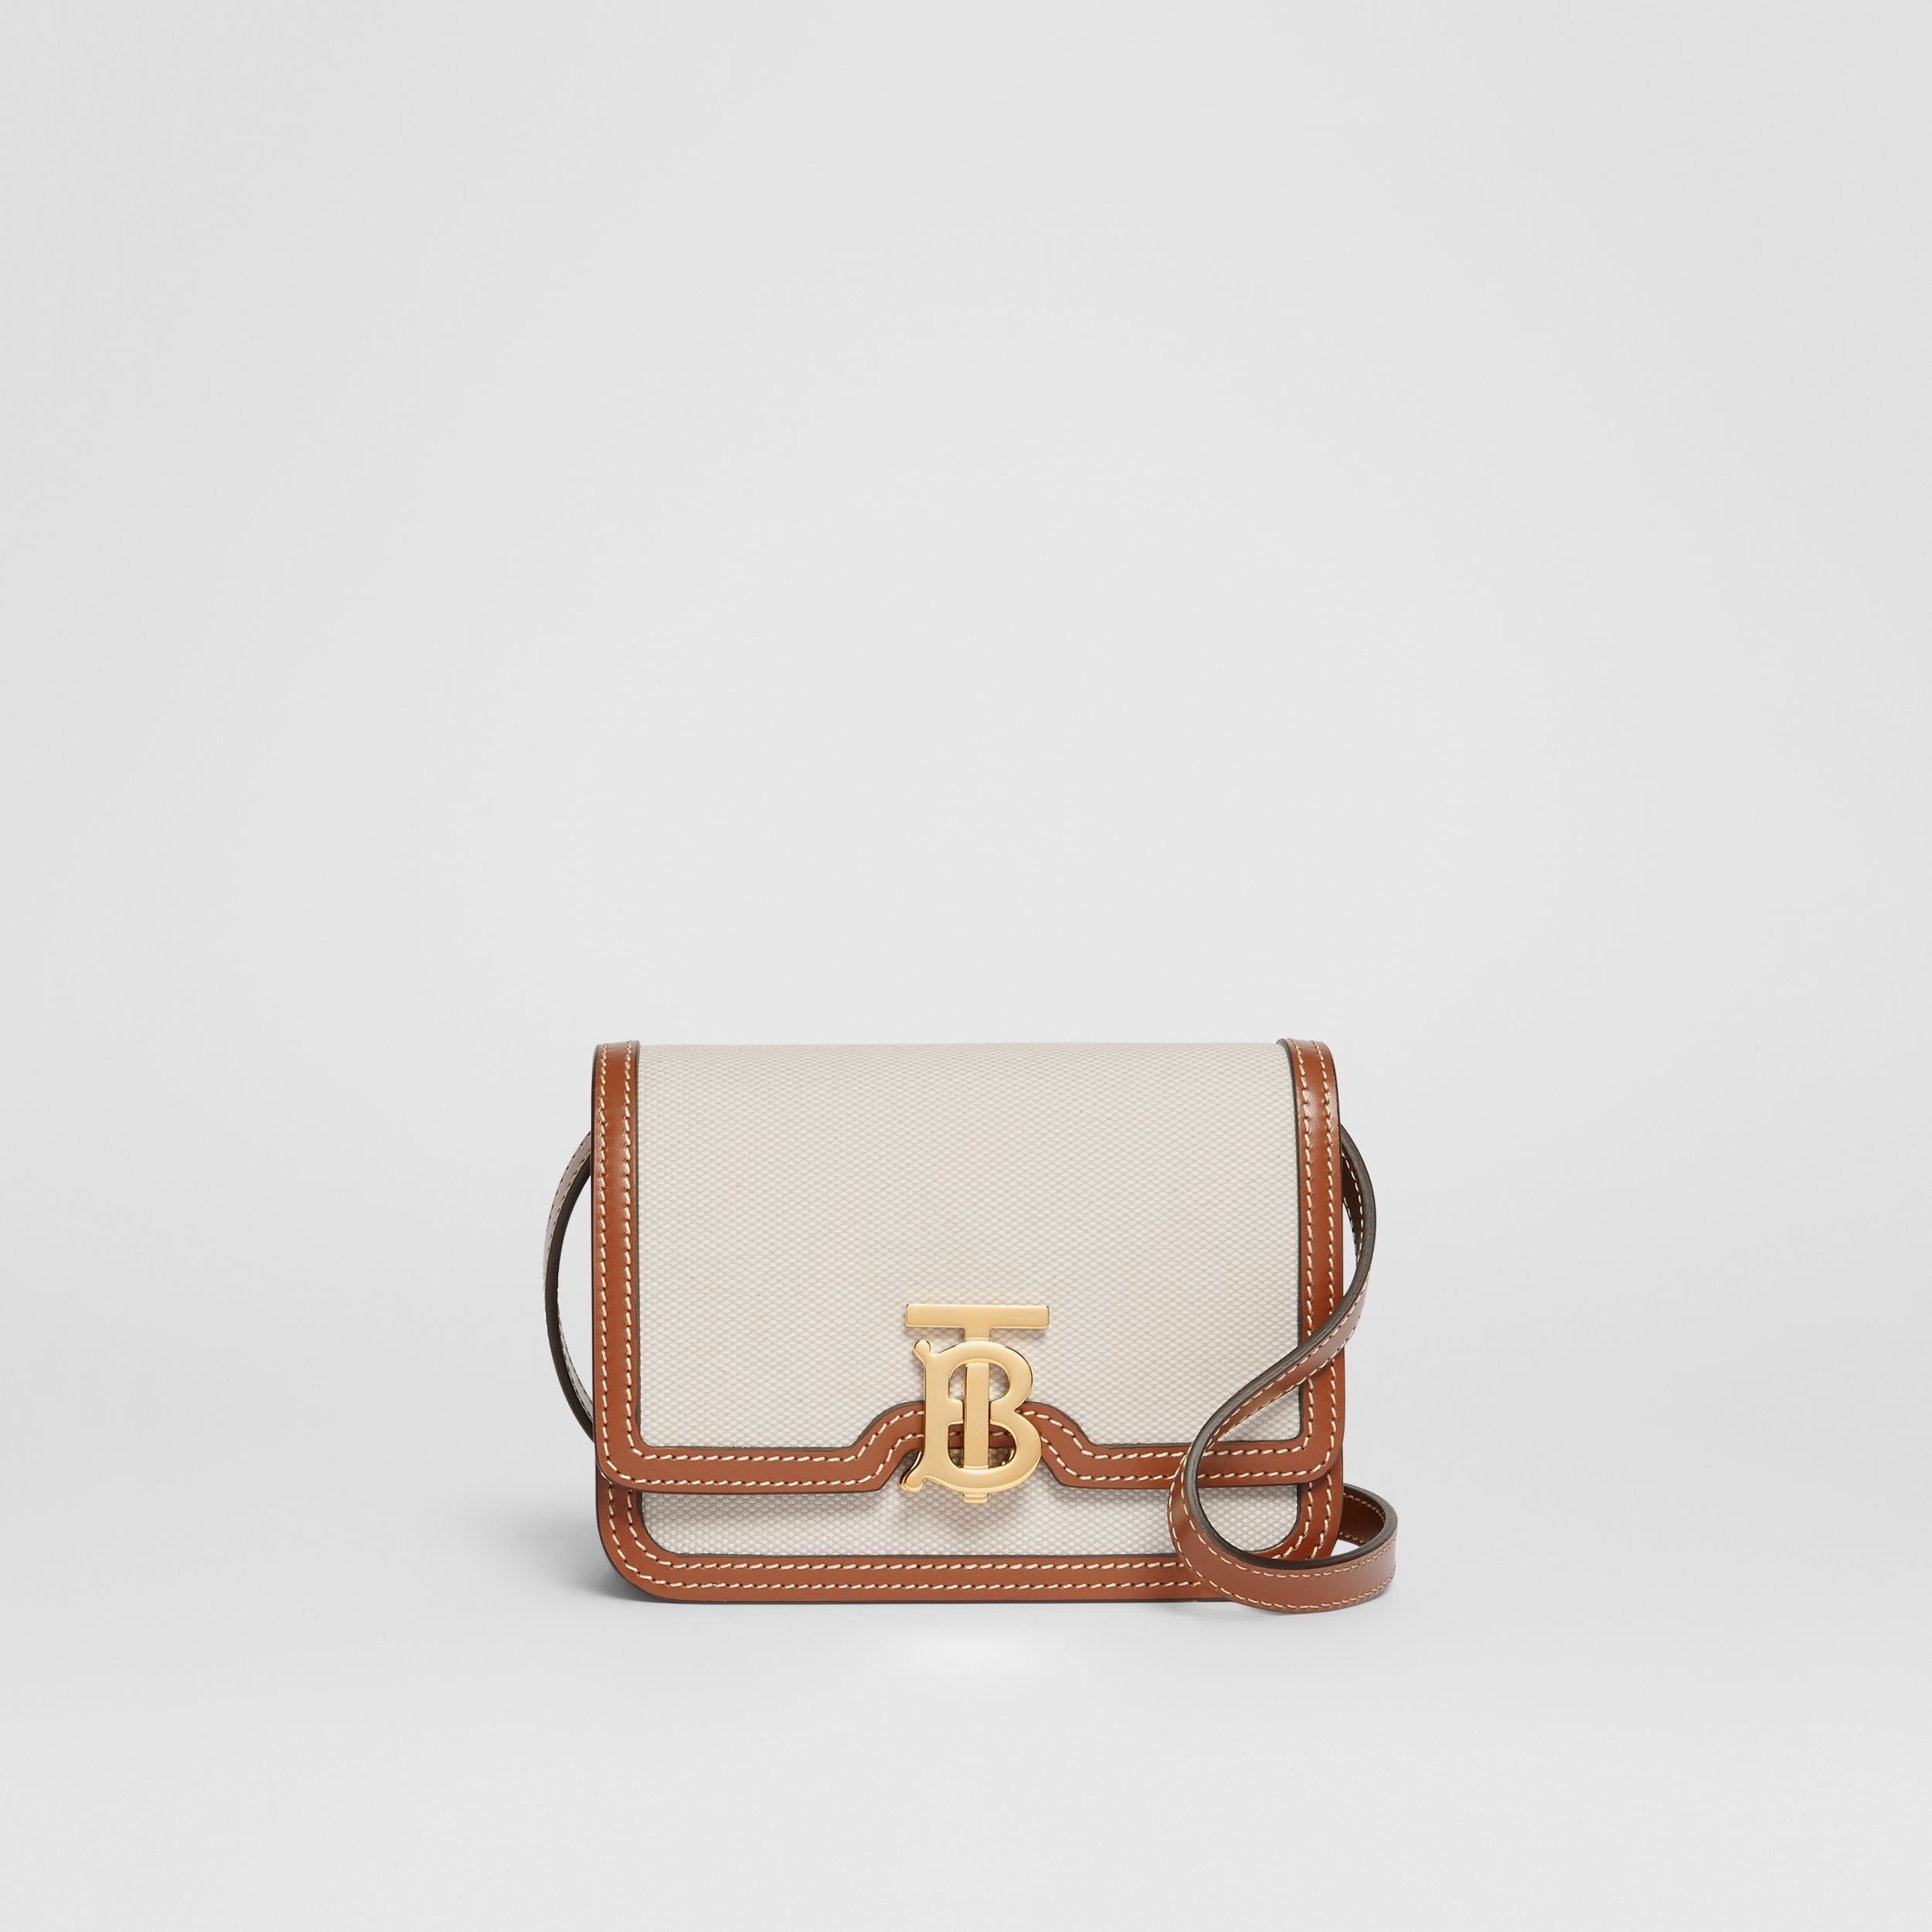 Mini Two-tone Canvas and Leather TB Bag in Natural/malt Brown - Women | Burberry - 1